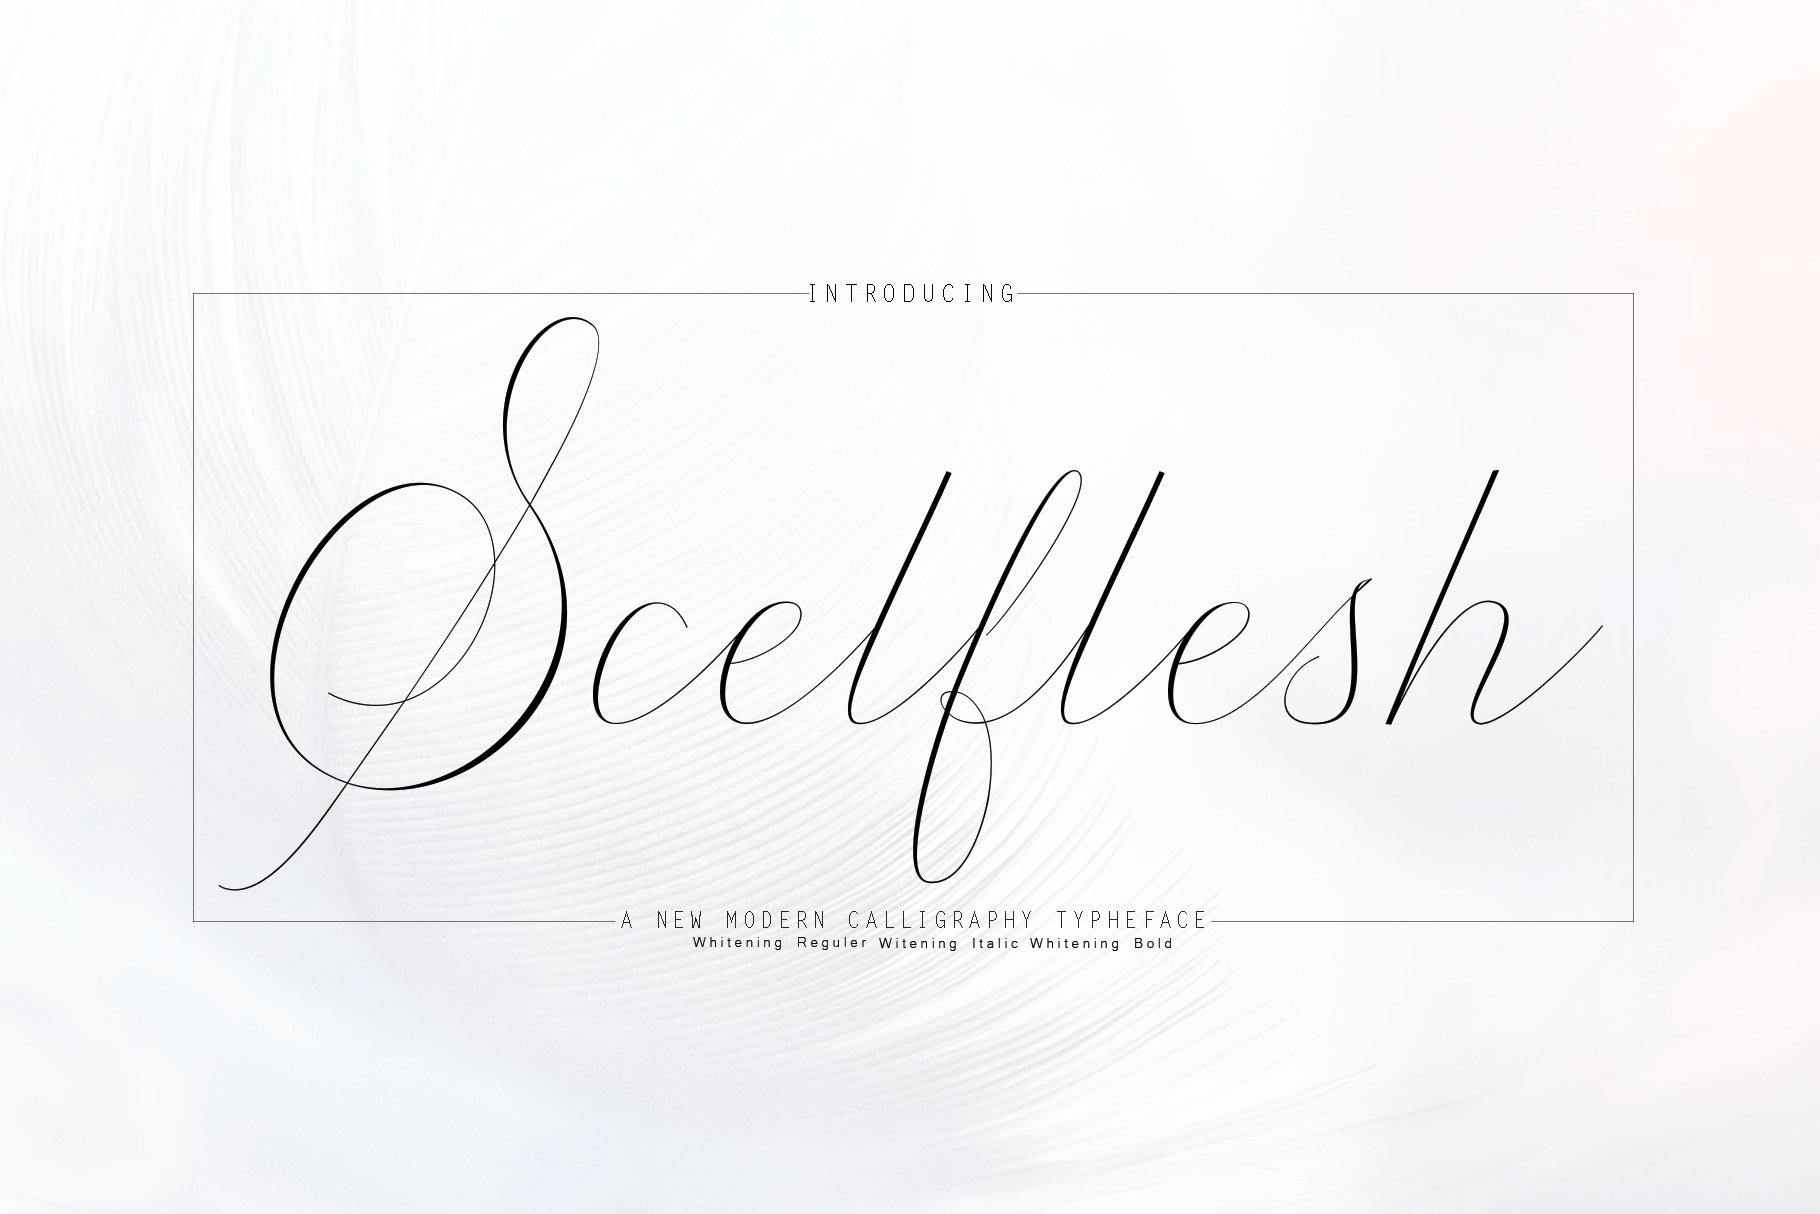 12 graceful charming fonts example image 11